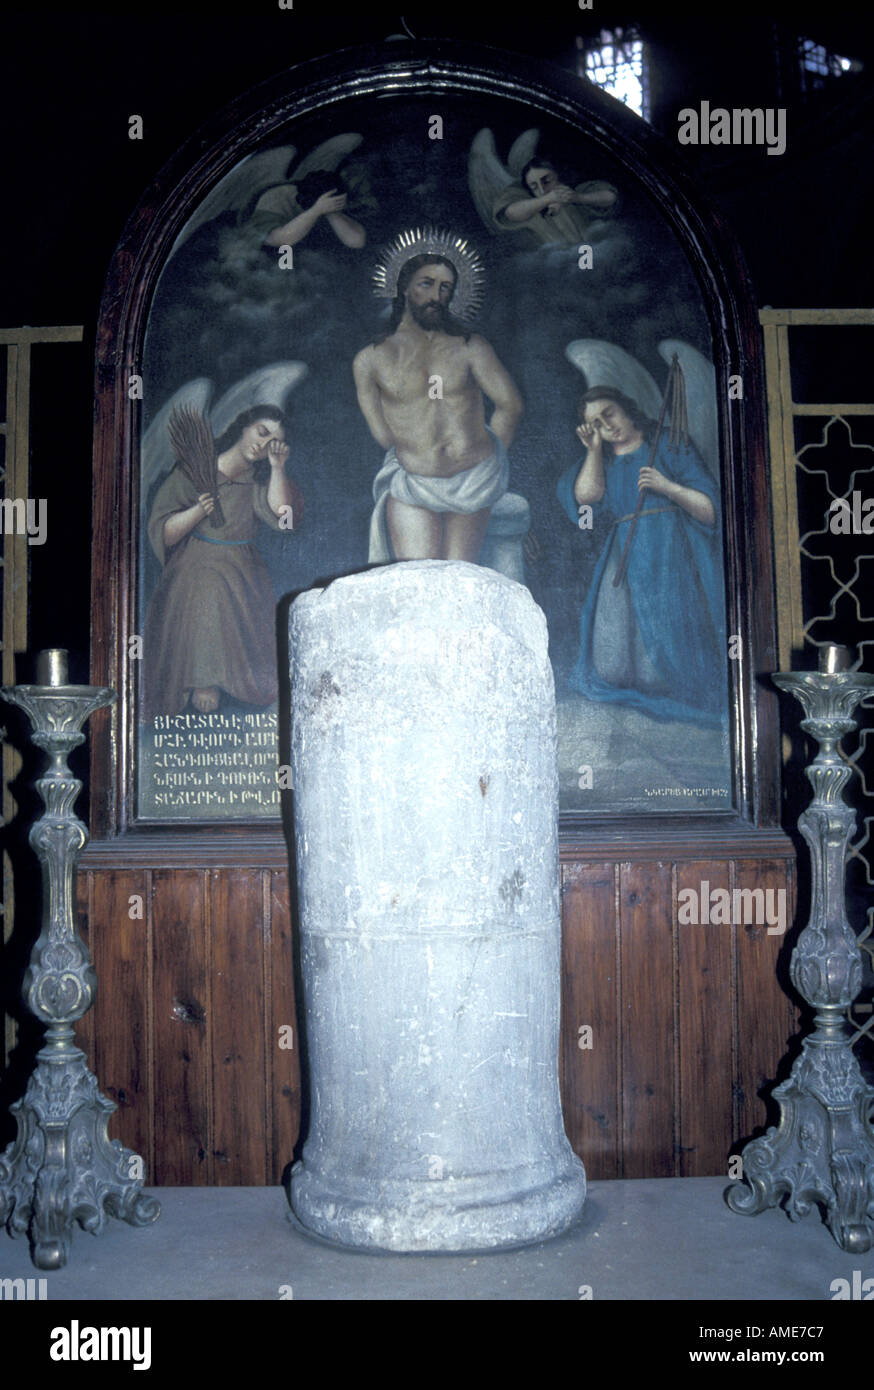 Marble pillar where Christ was tied, located in the Armenian Chapel, Church of the Holy Sepulchre Jerusalem - Stock Image